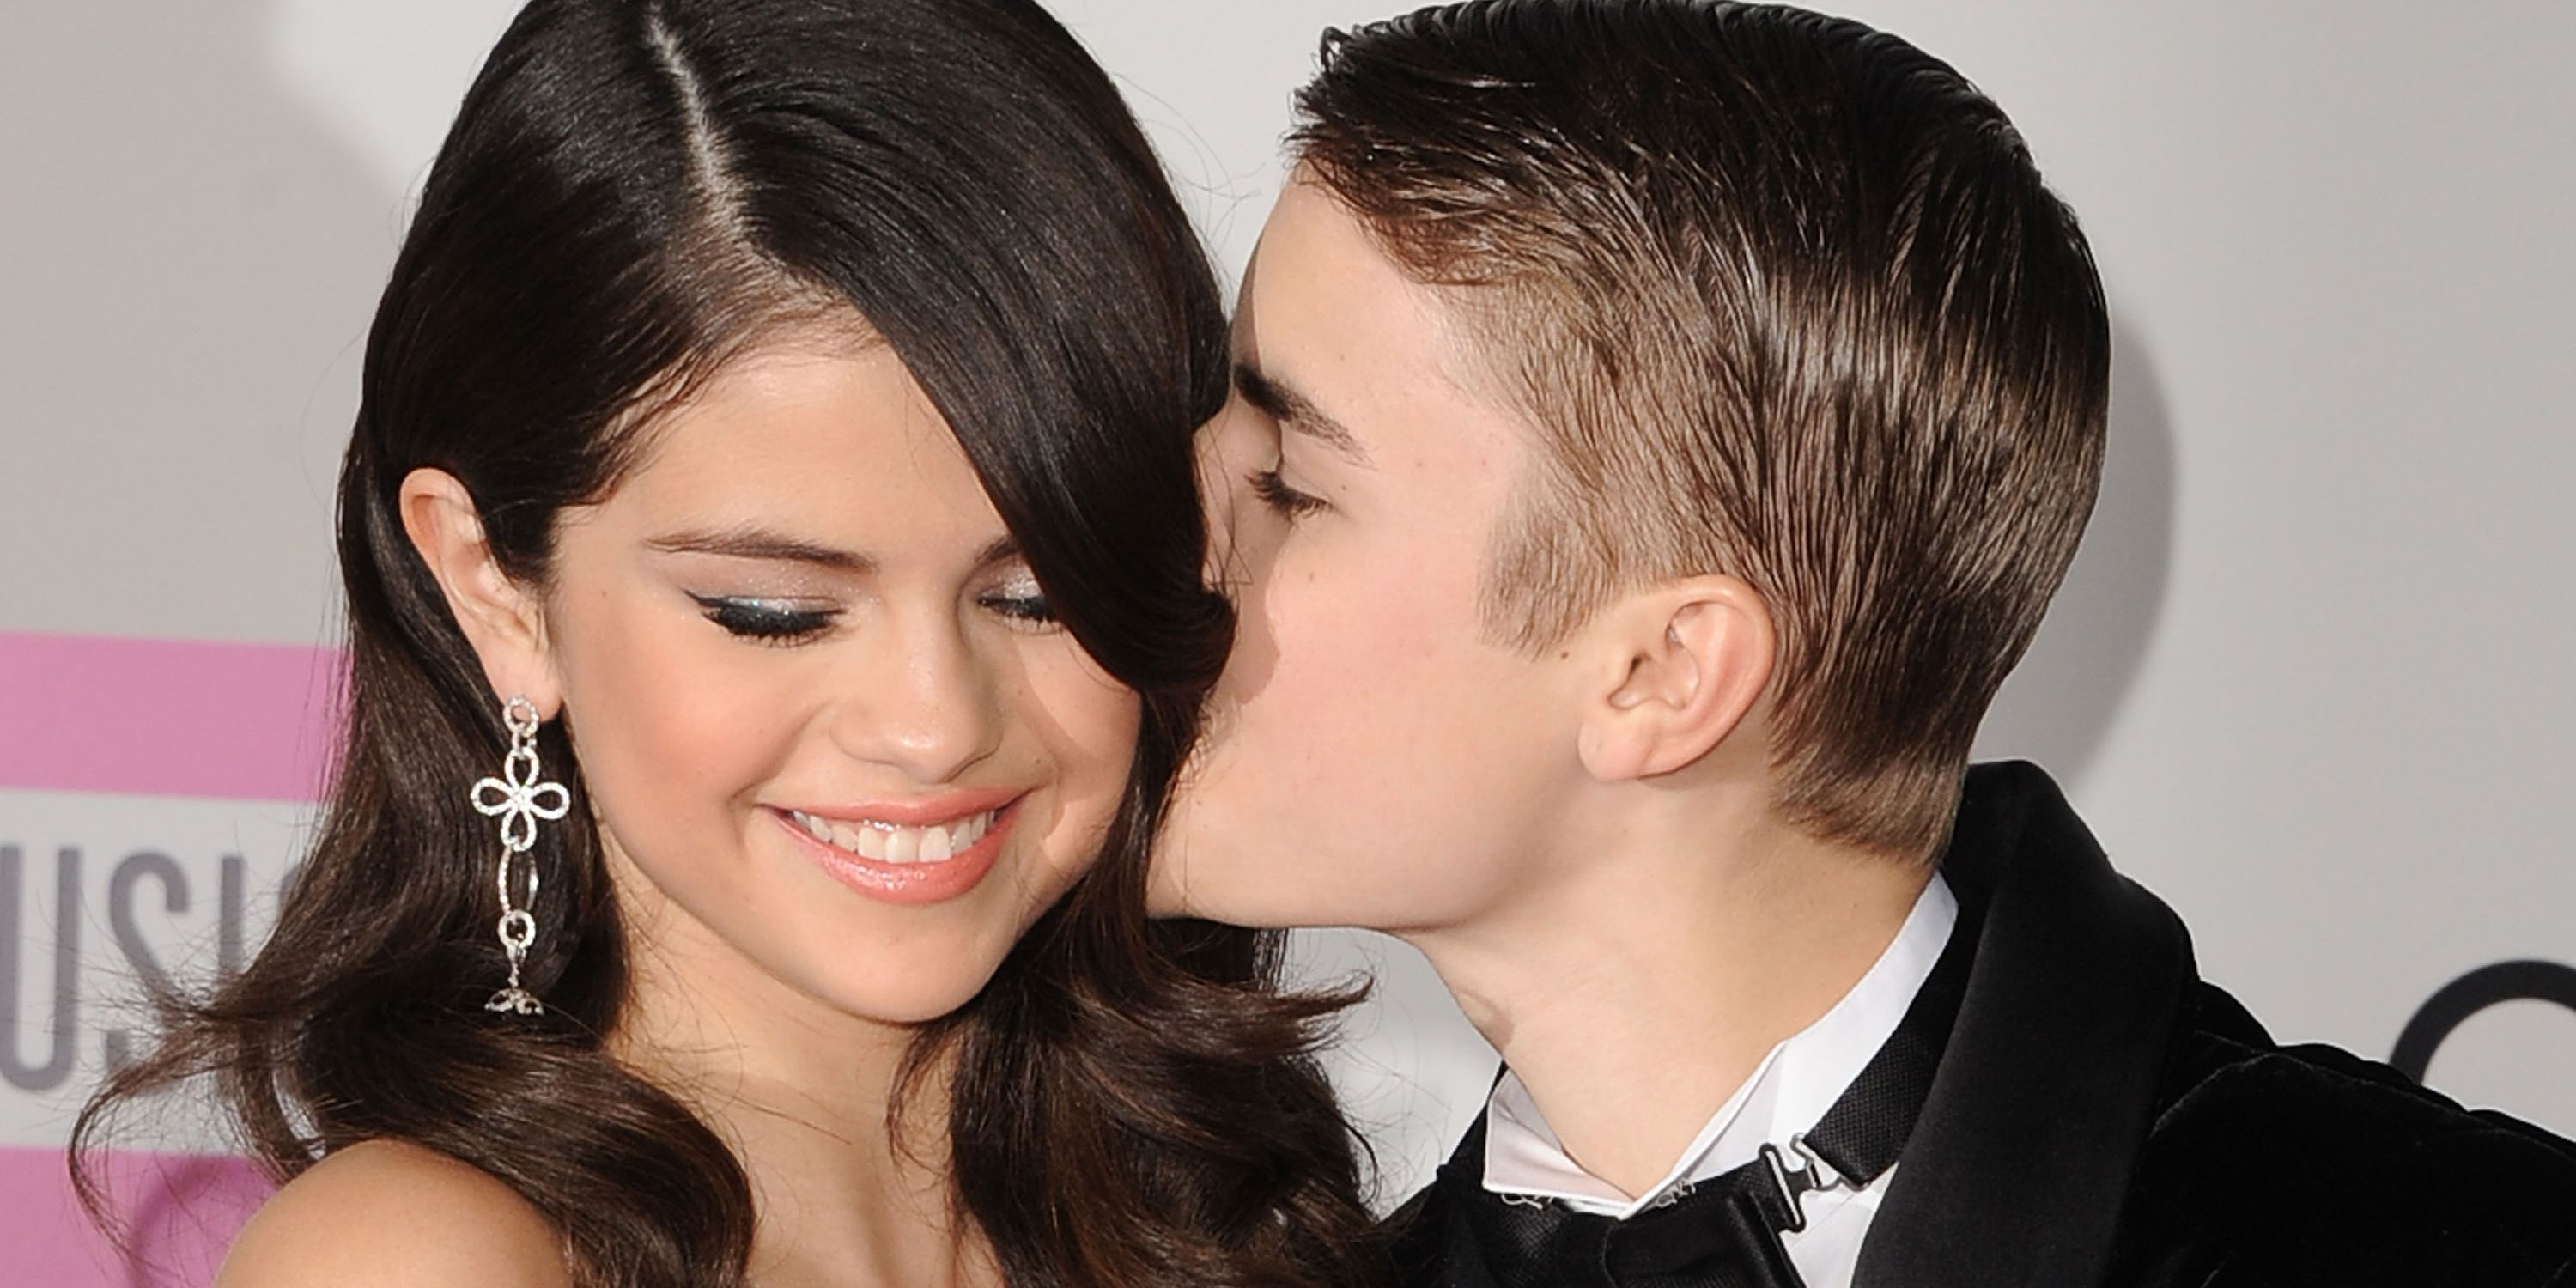 Whos Justin Bieber Dating Now 2018